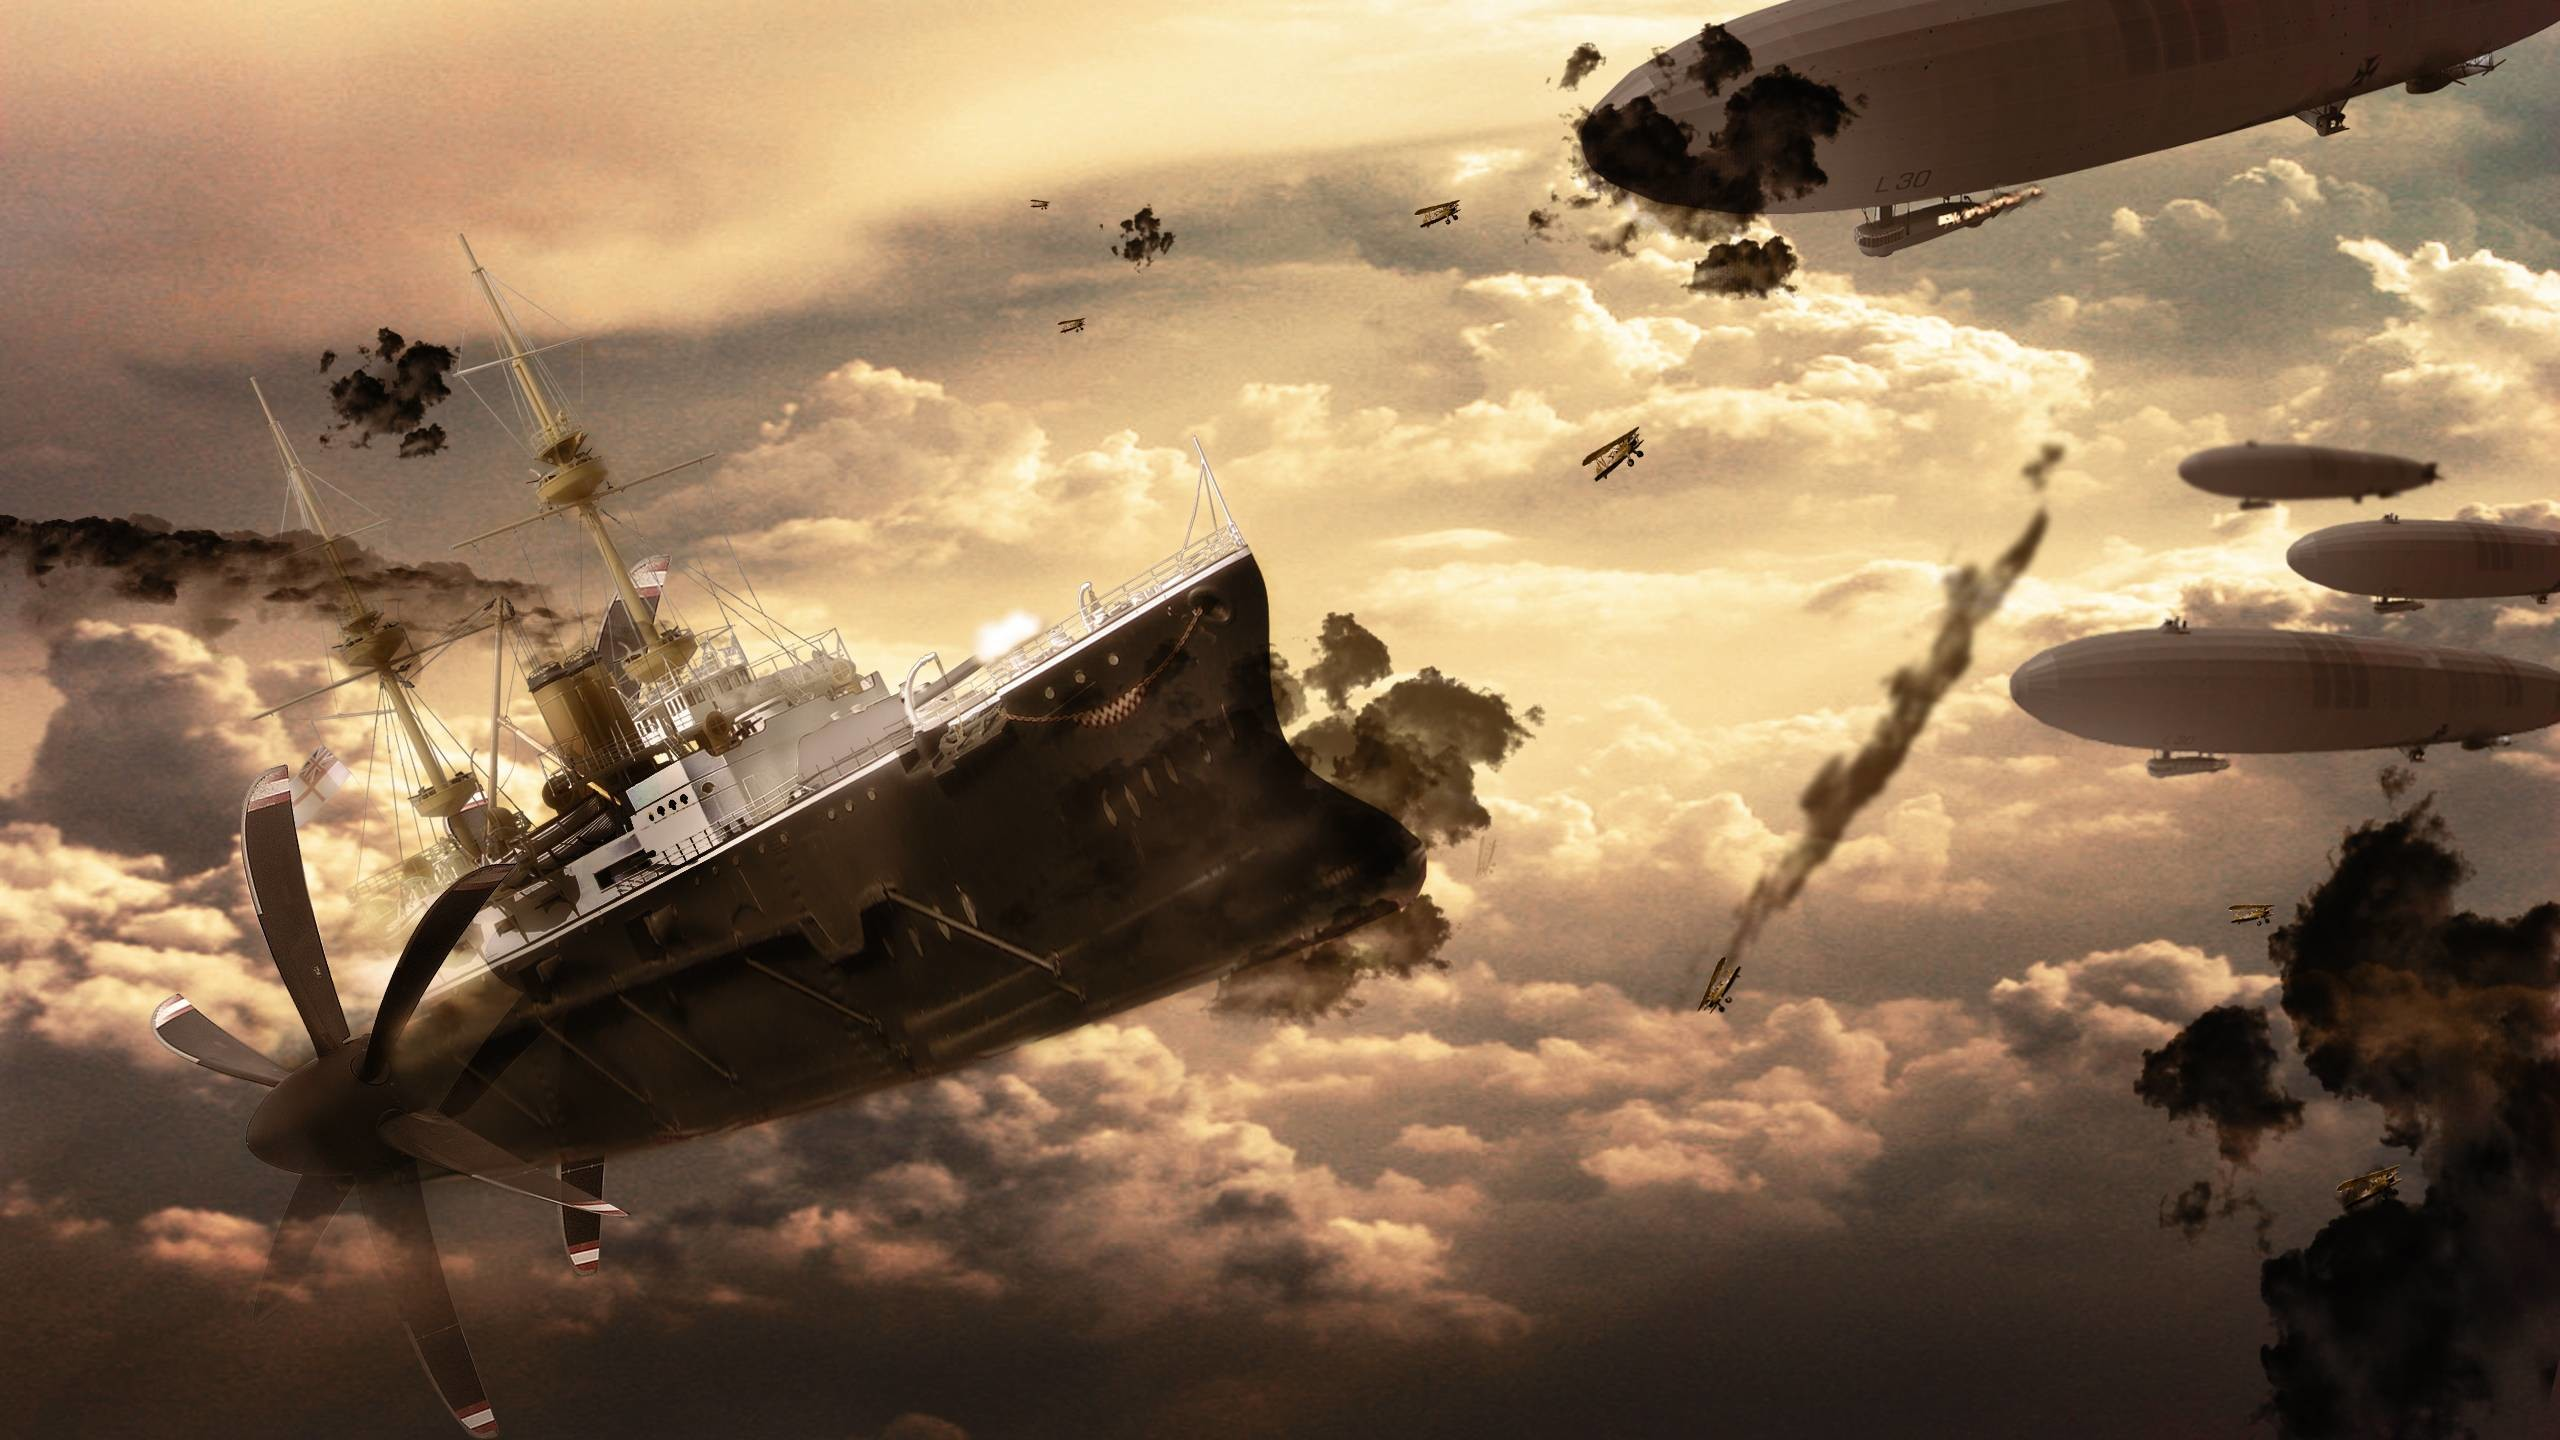 Res: 2560x1440, Wallpapers For > Steampunk Wallpaper Airship